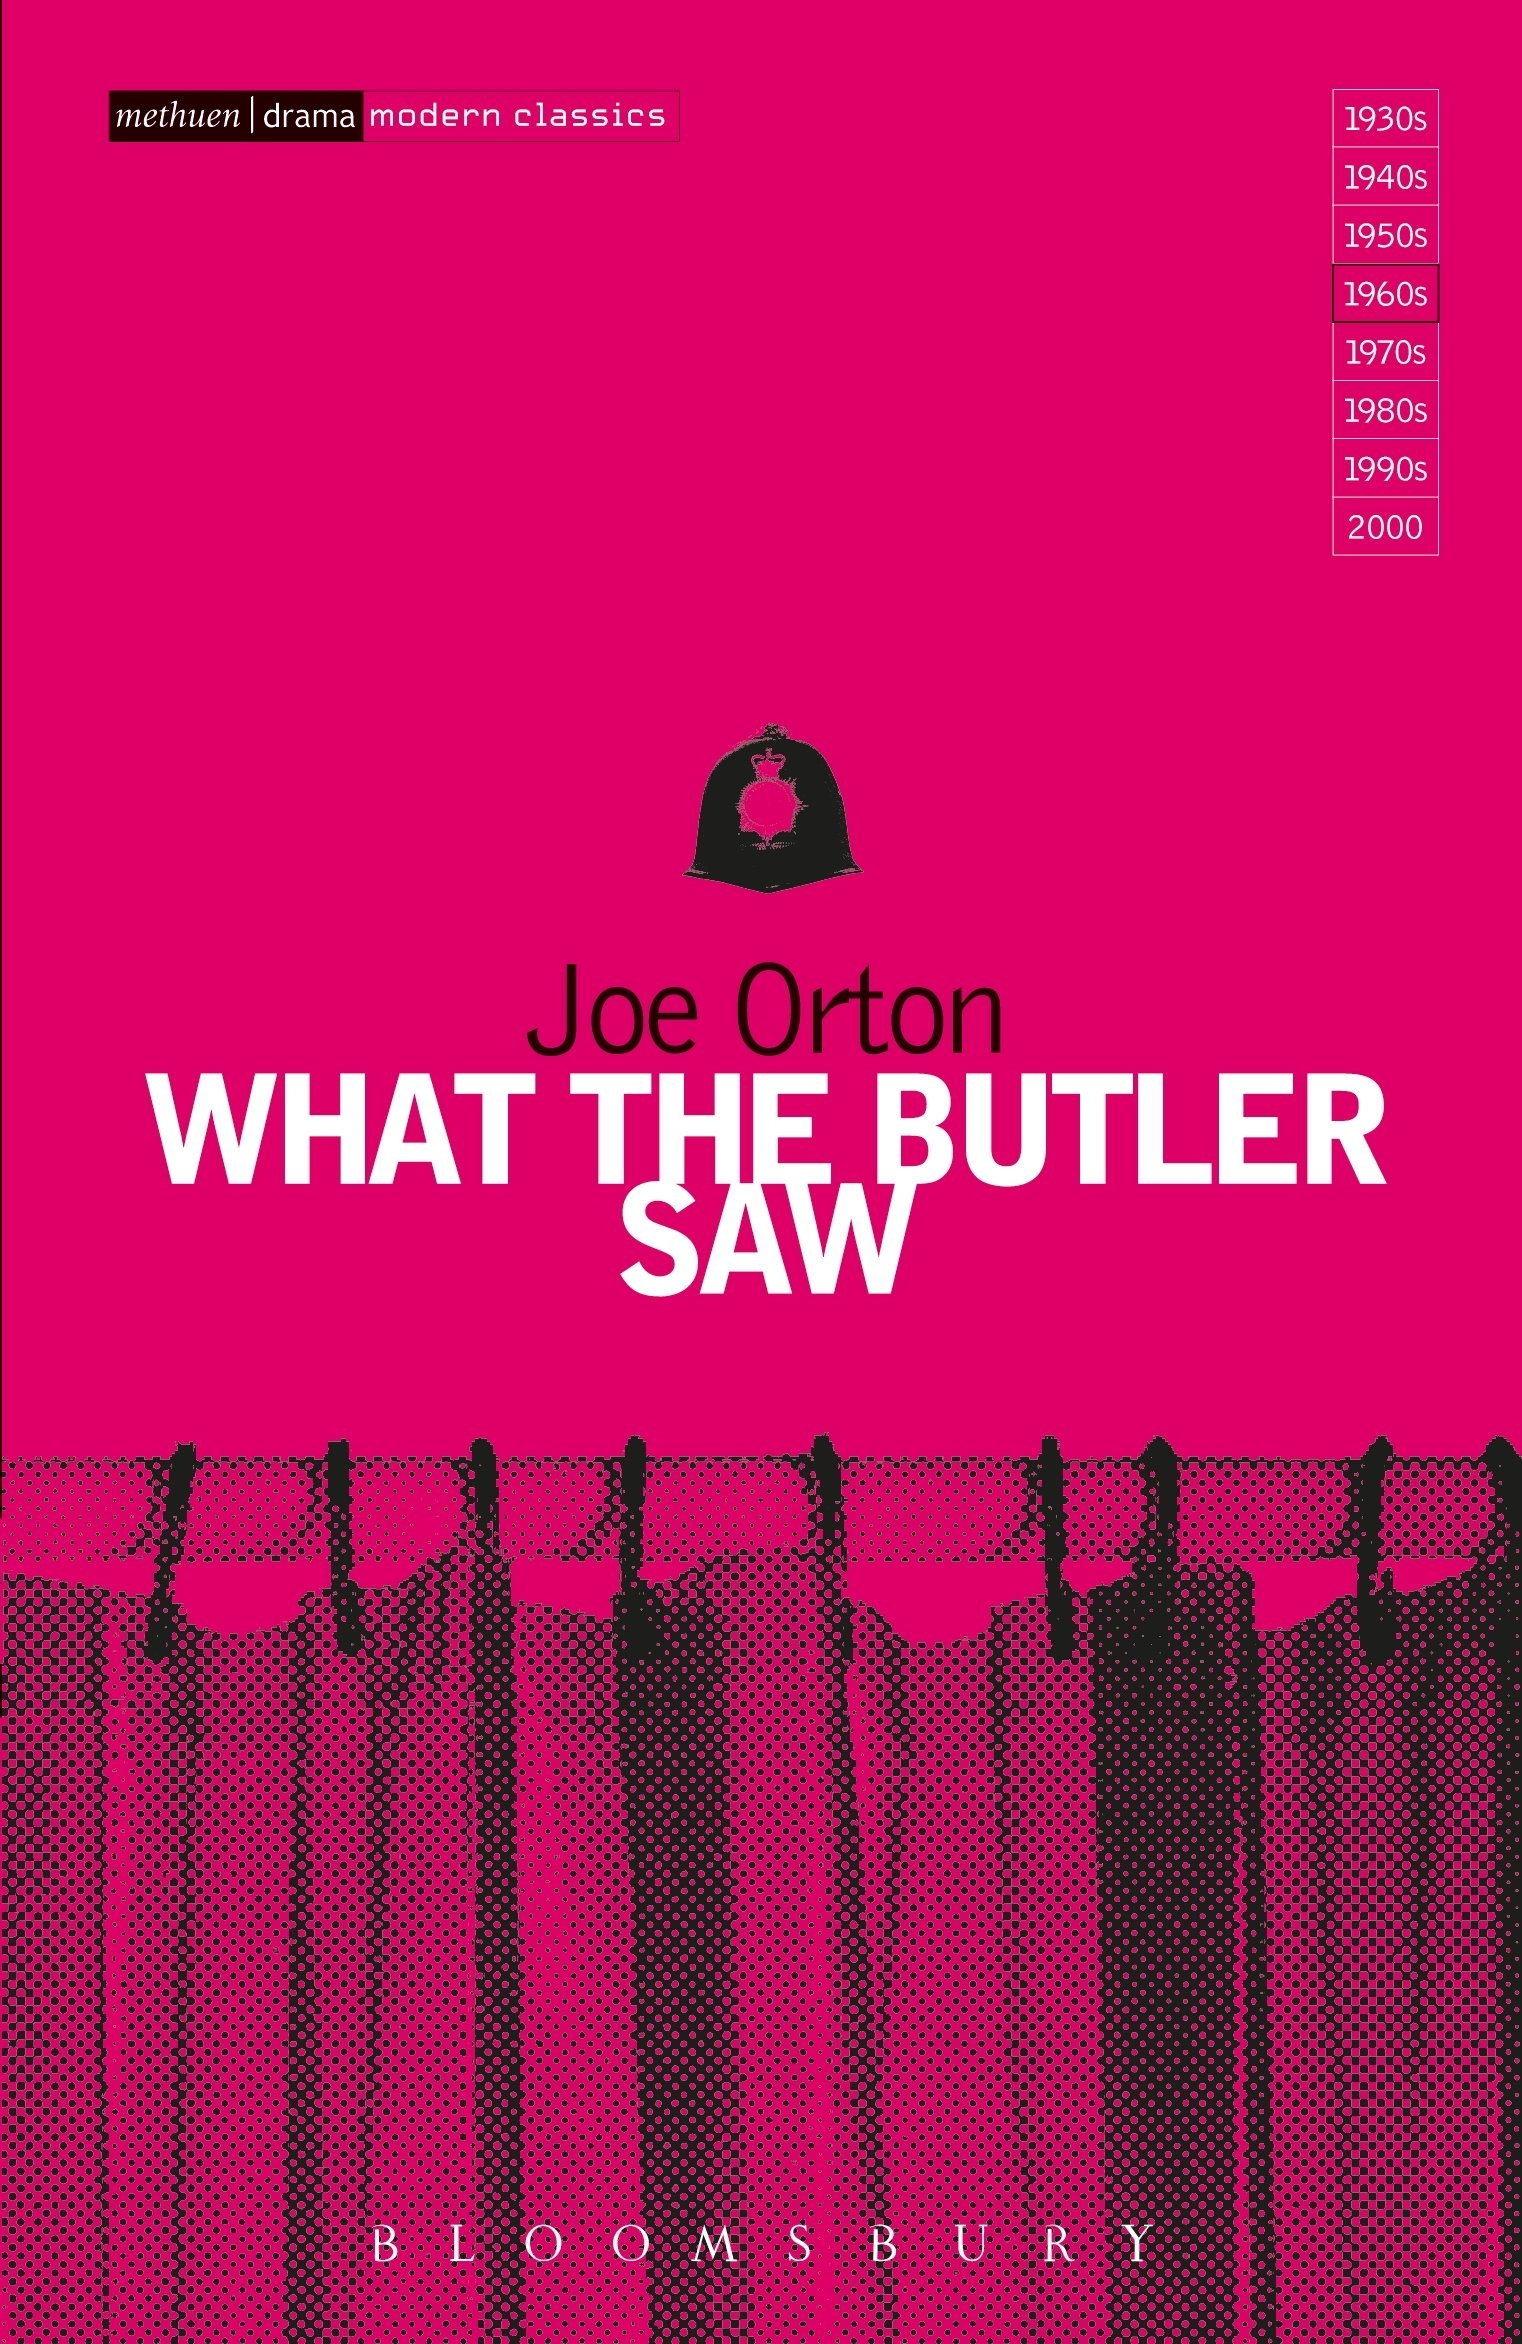 Buy What the Butler Saw (playscript)